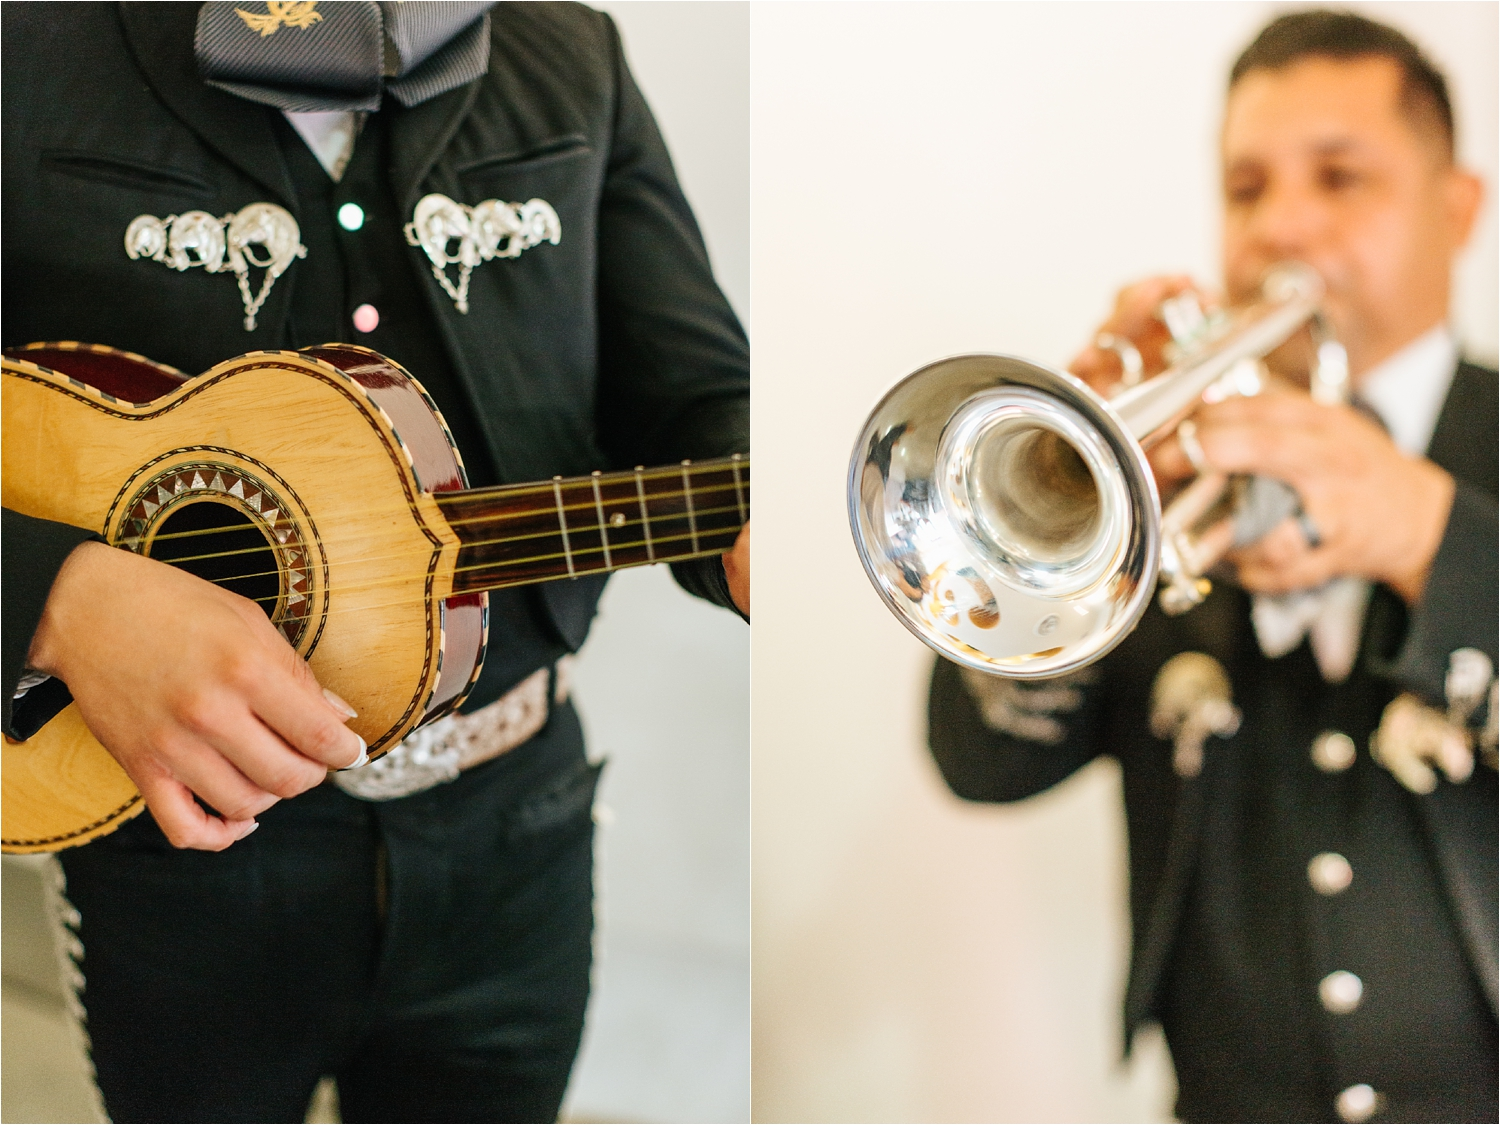 Mariachi Music during the Wedding Reception - https://brittneyhannonphotography.com